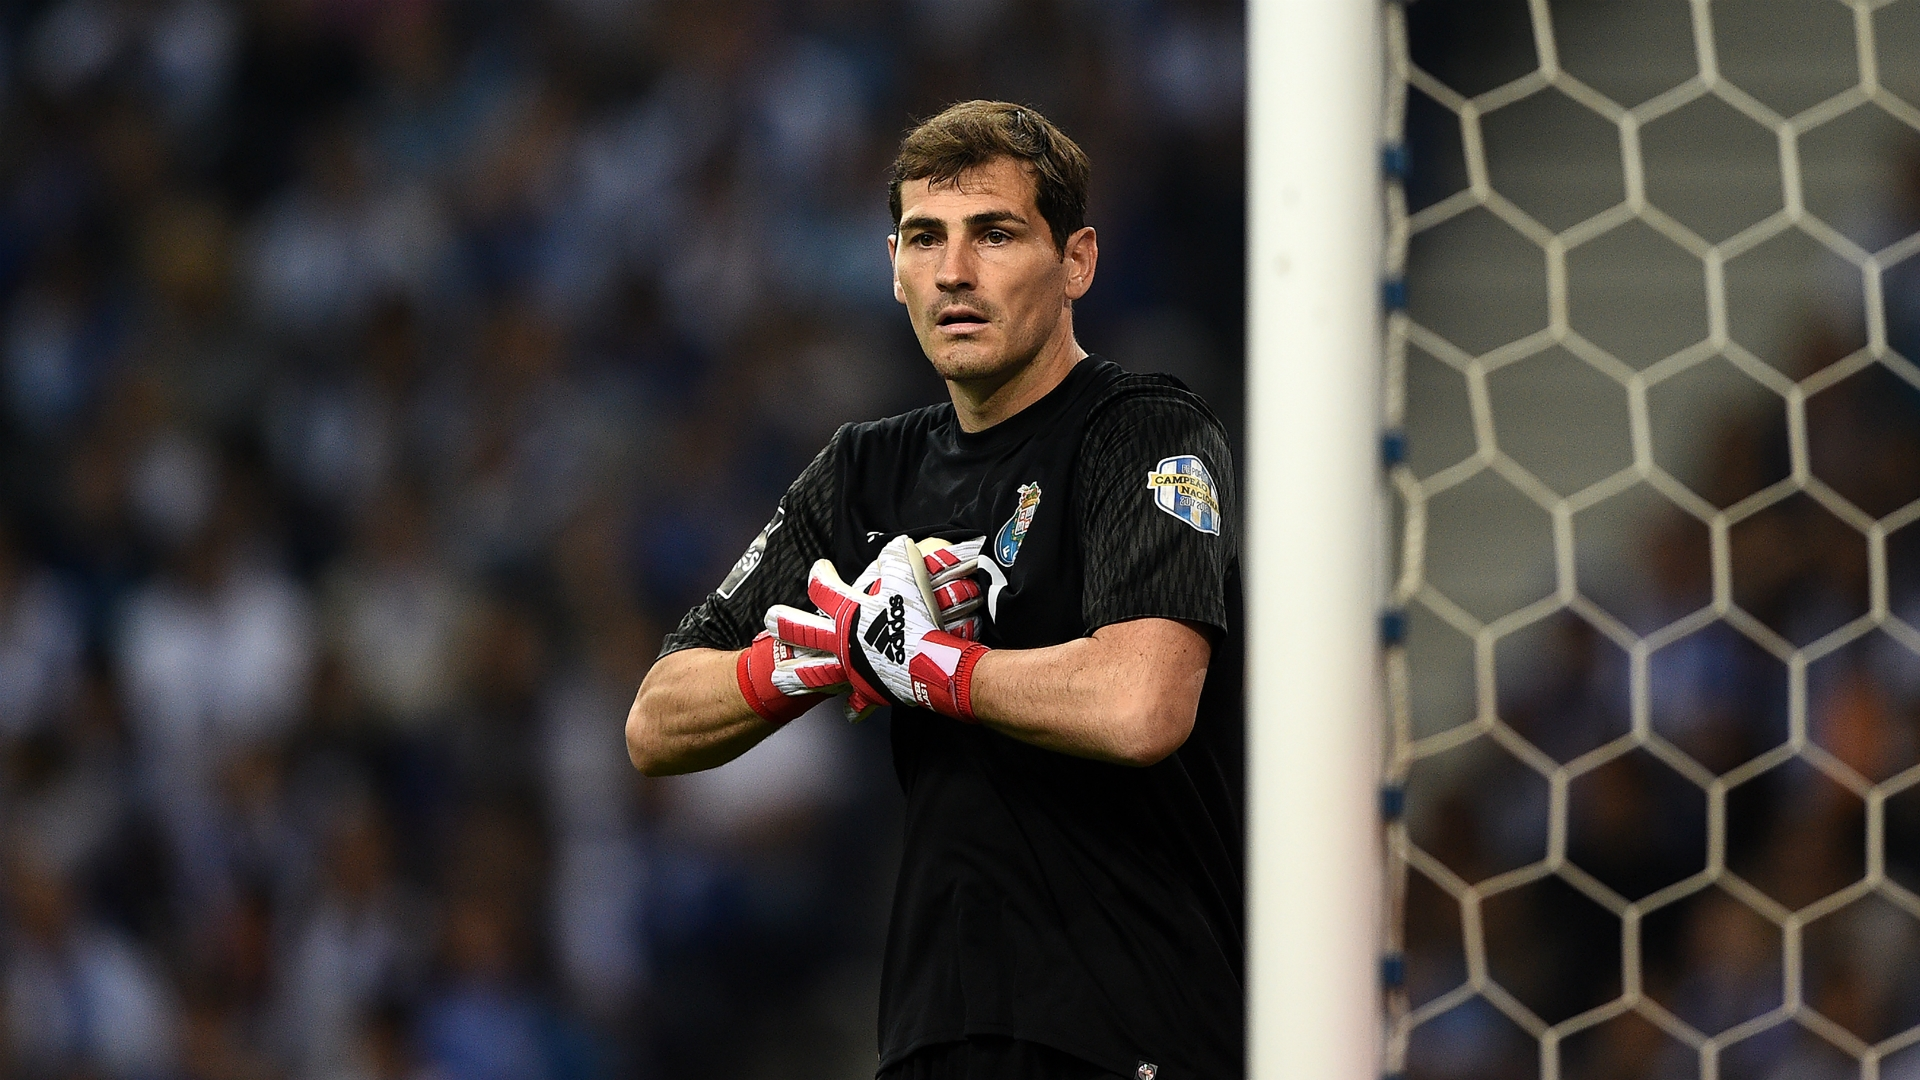 Iker Casillas (Porto)